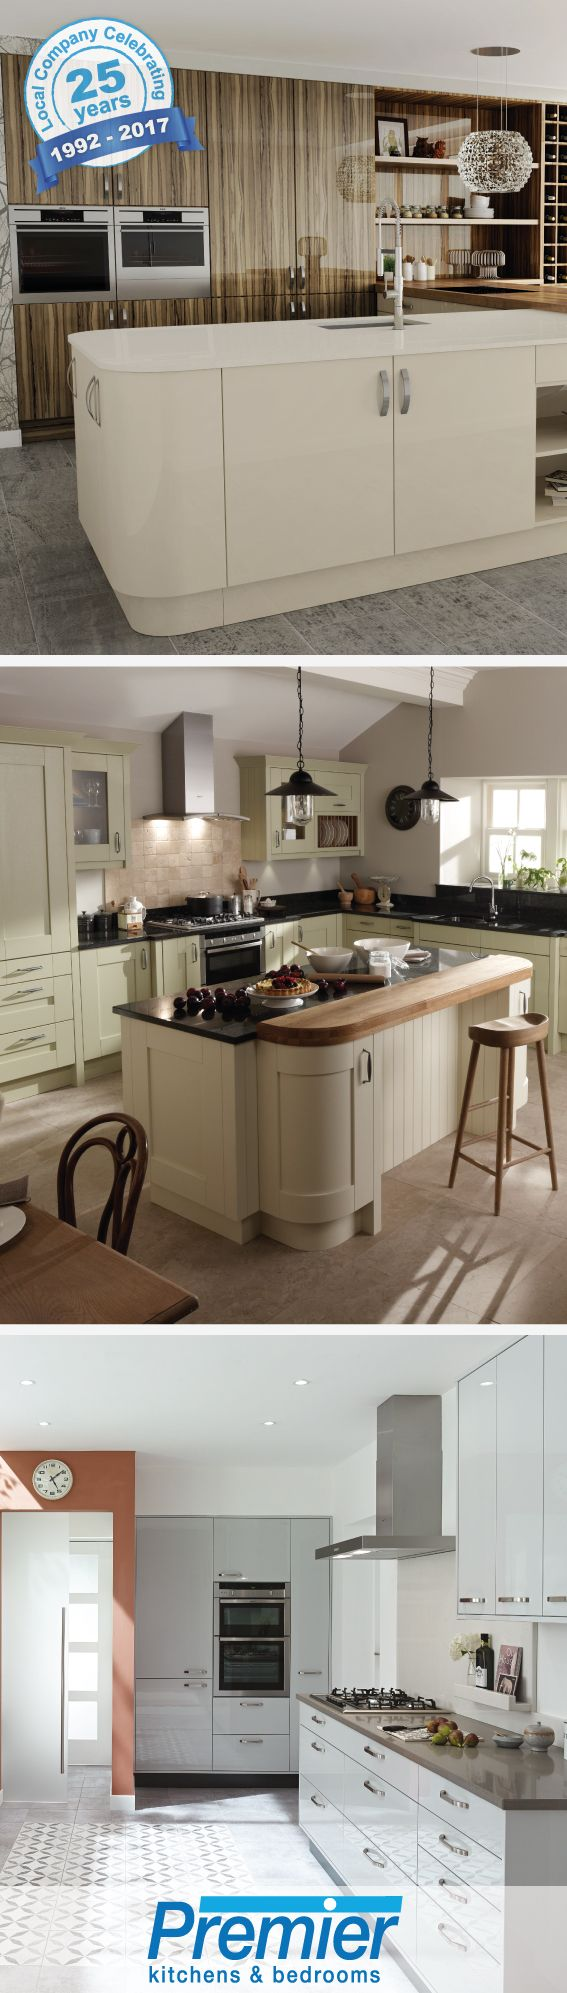 Trend From modern to traditional we have a stunning range of fitted kitchens and bedrooms to